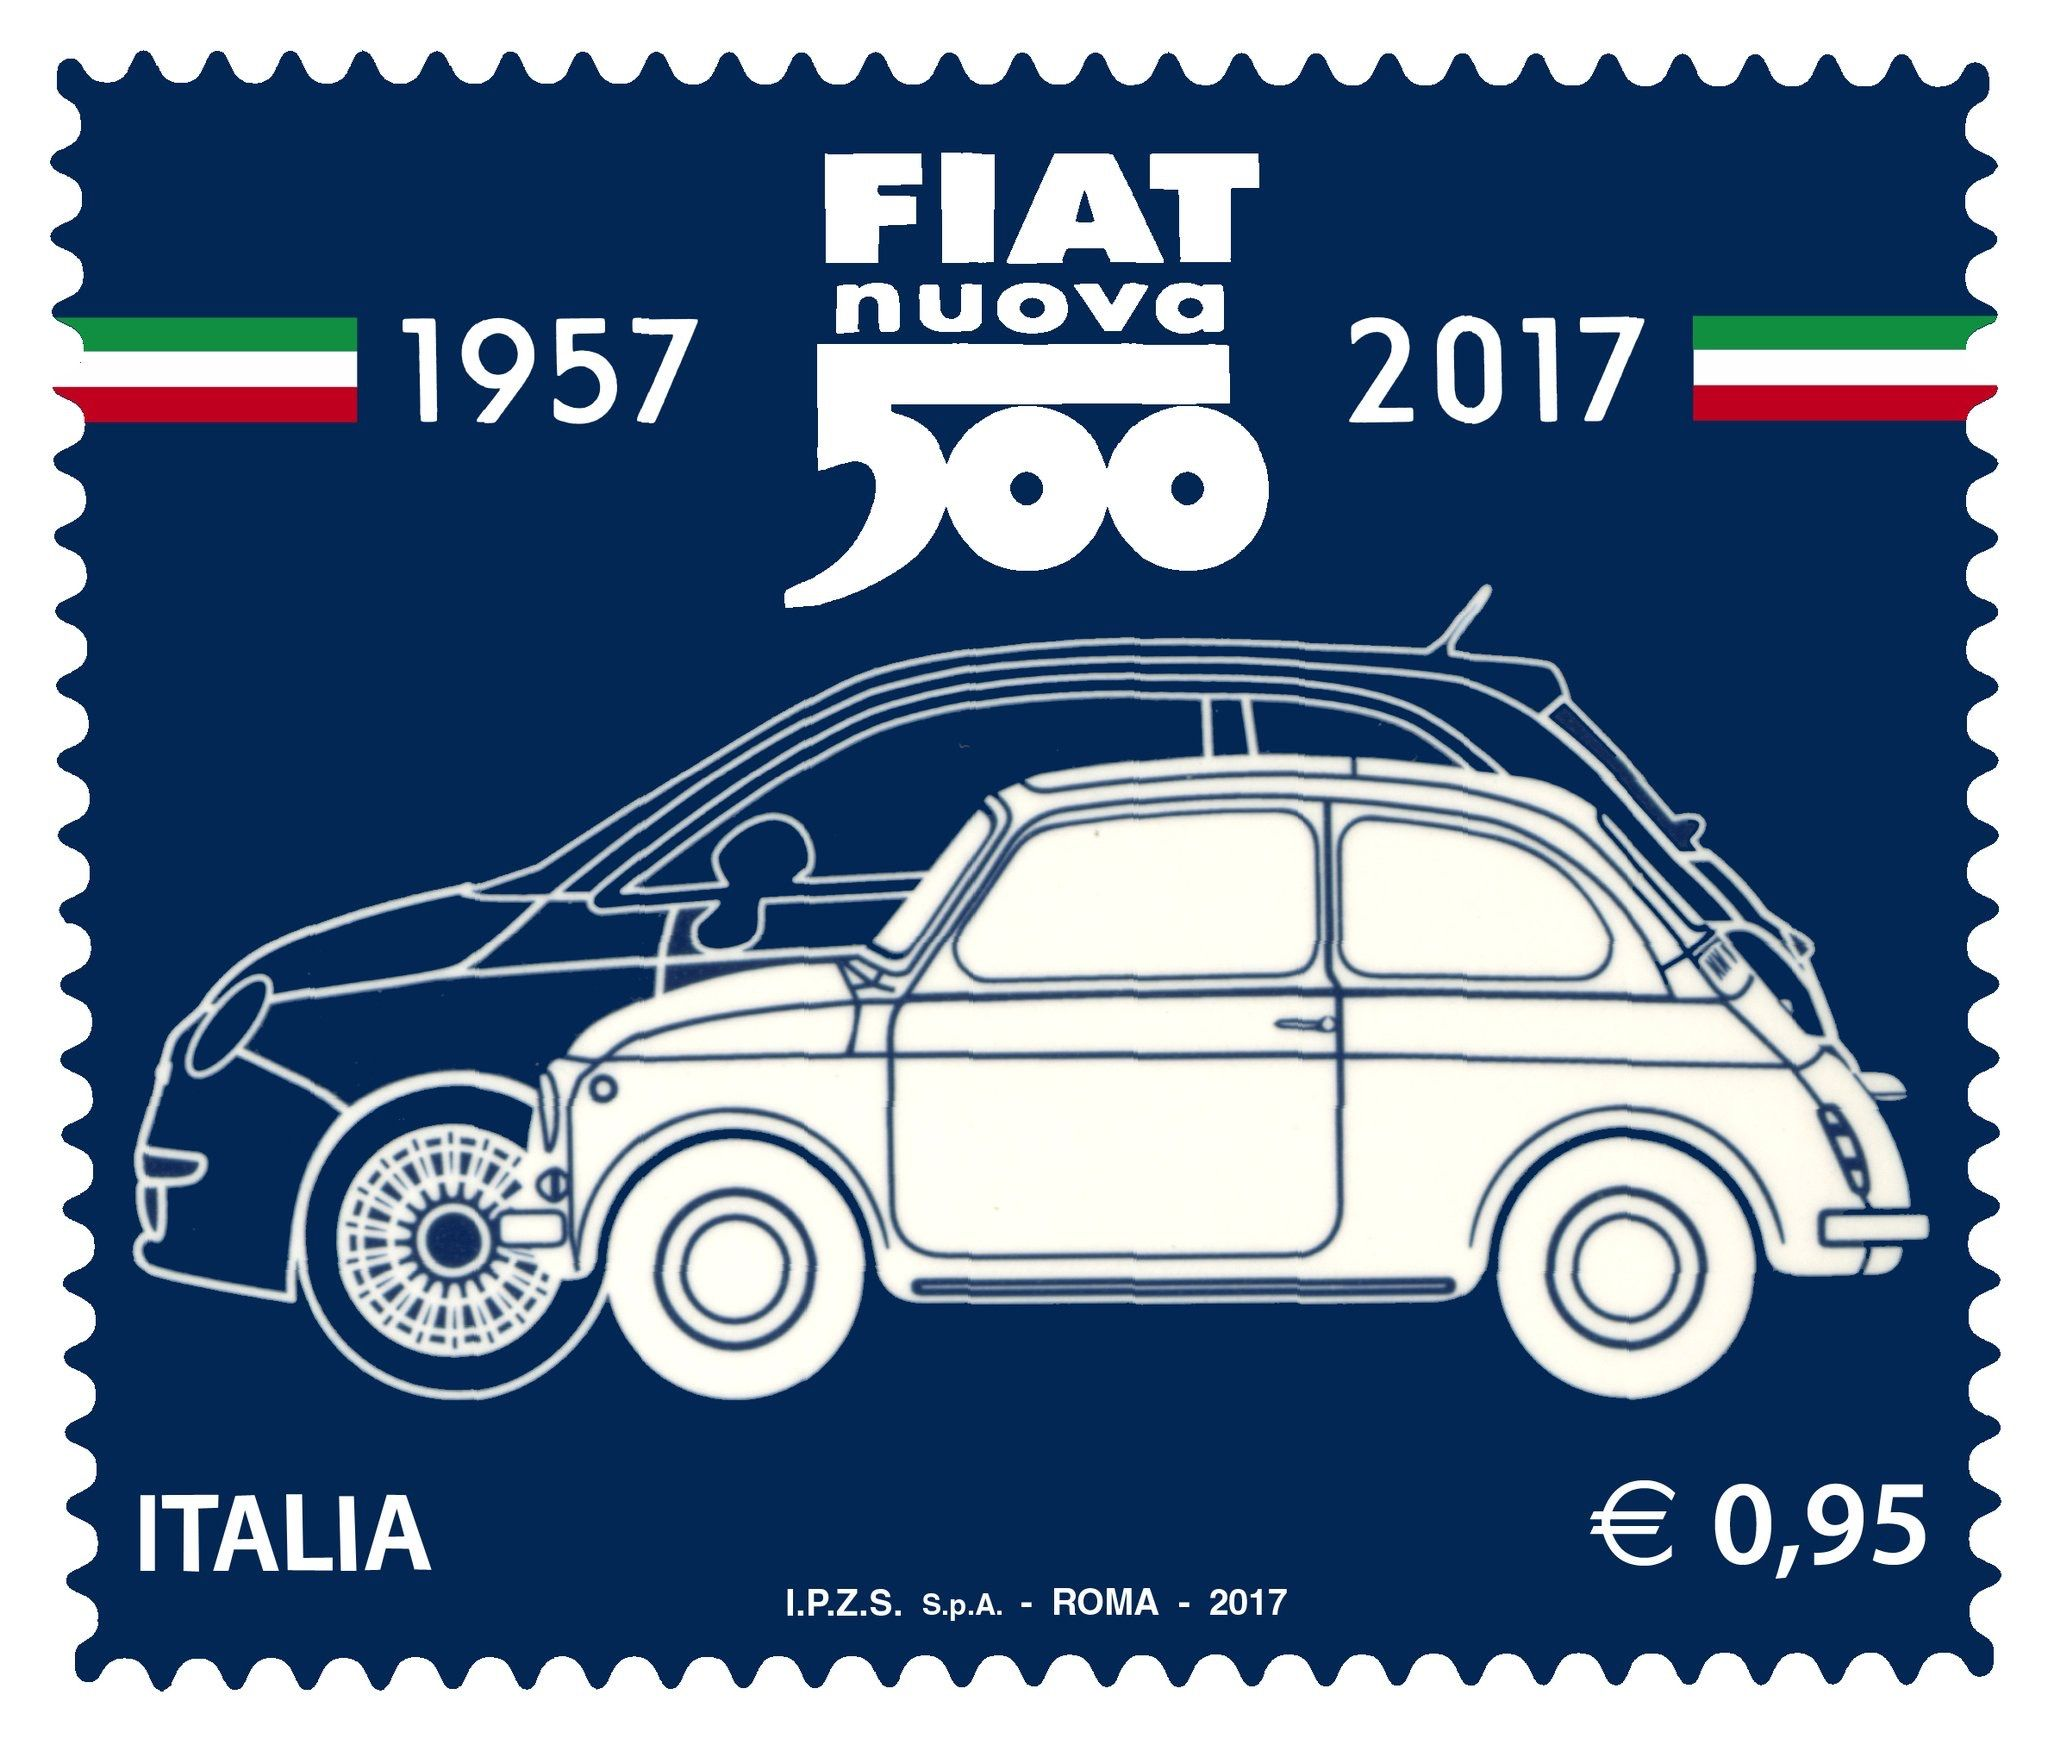 Fiat500 Is The Most Iconic Italian Car Of Ever The Stamp Explaining How Long You Need To Deliver A Letter In Italy Ordu [ 1745 x 2048 Pixel ]